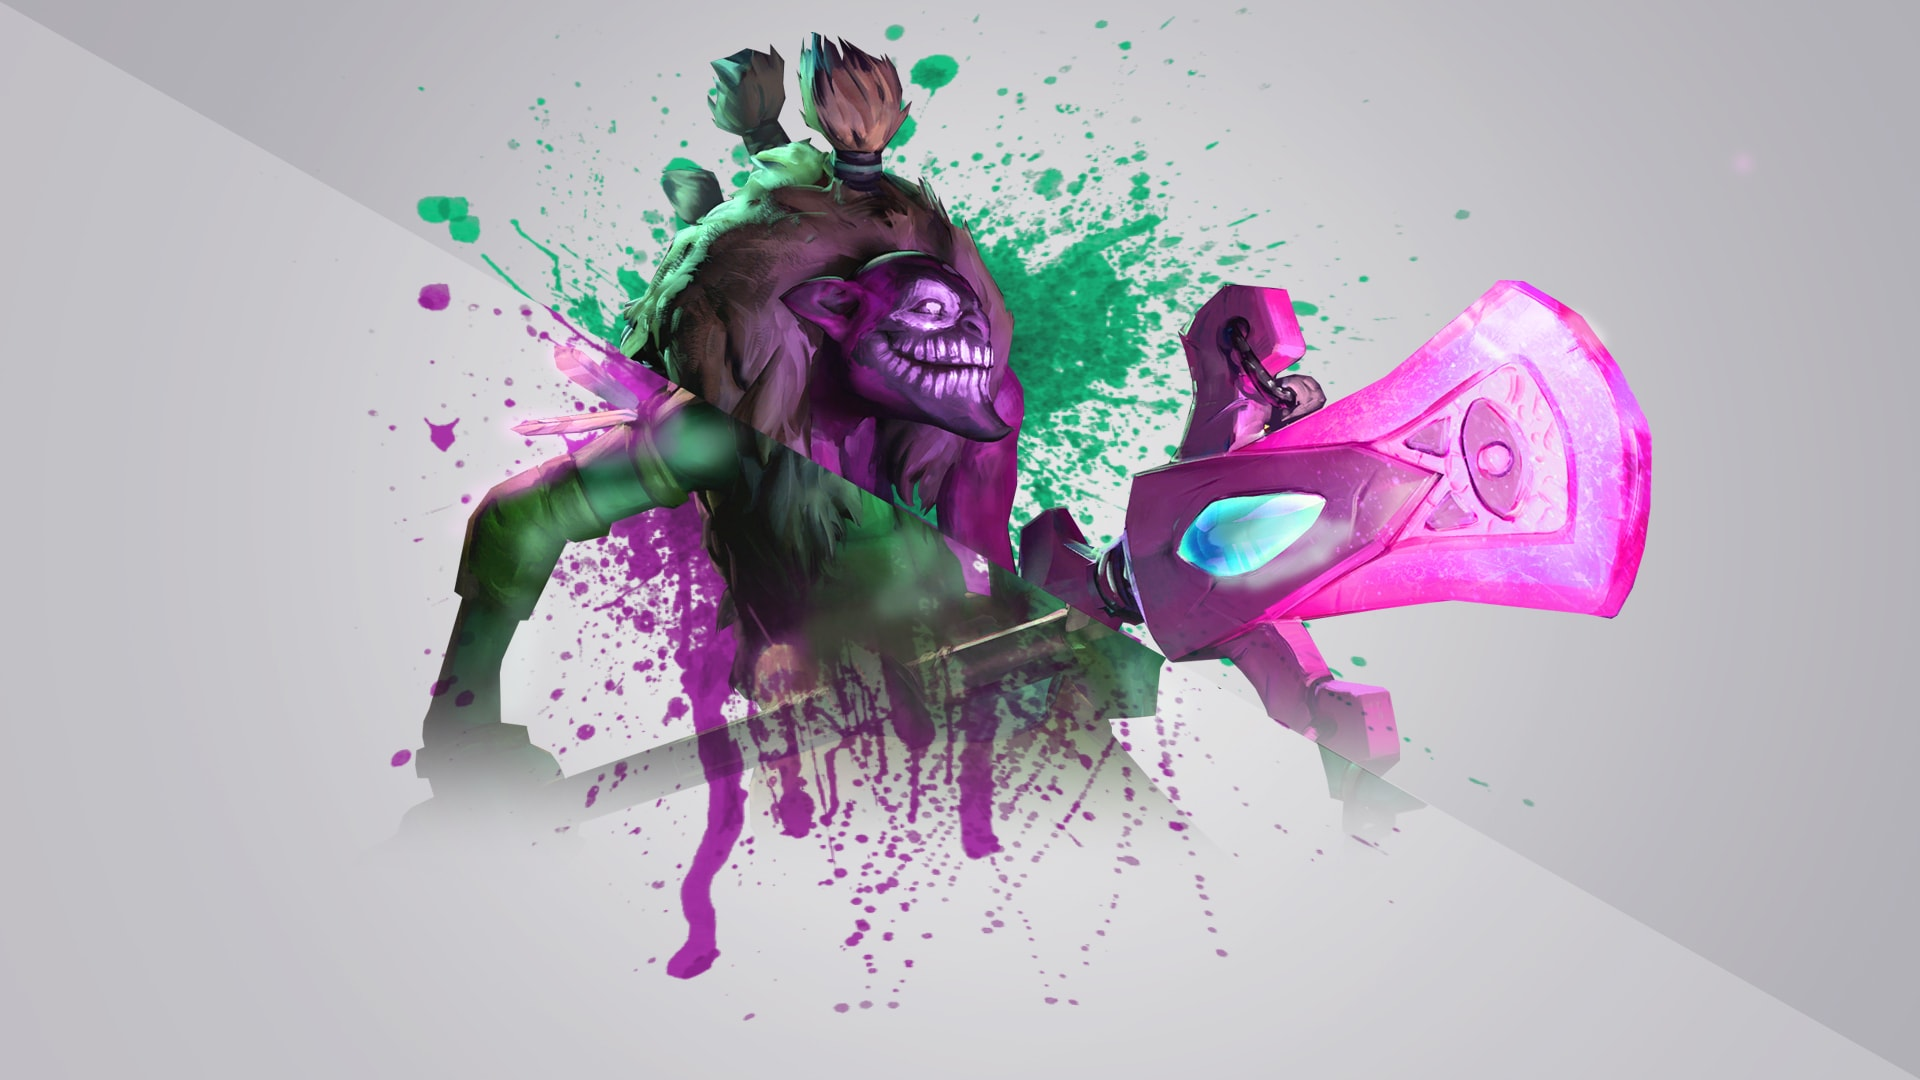 Dota2 : Dazzle widescreen wallpapers